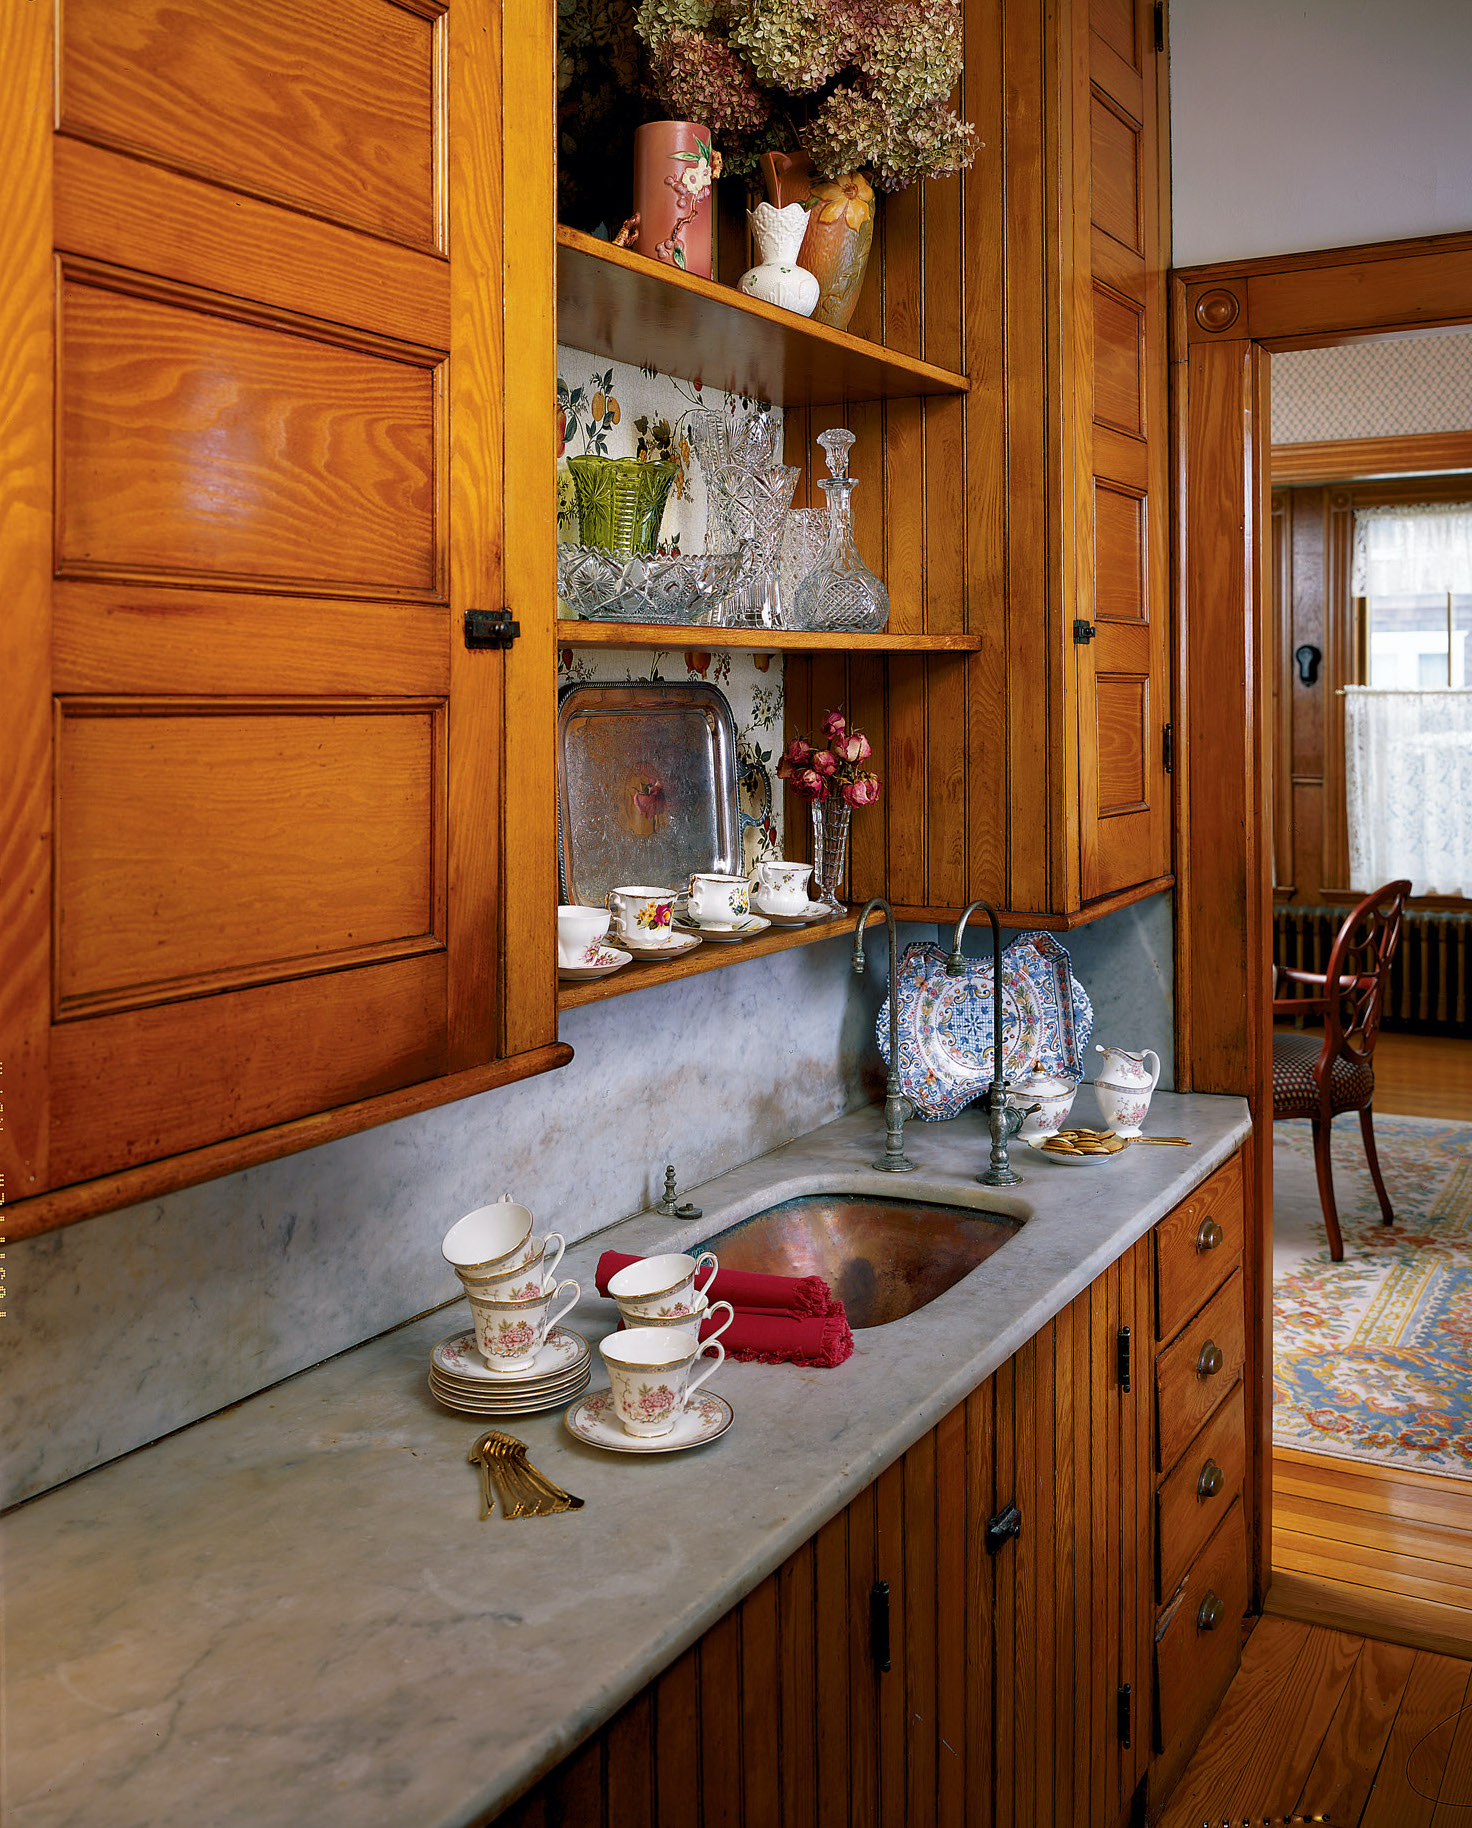 The copper sink in this late-19th-century pantry is still in good shape, even compared to the marble counter, which shows some staining and pitting.